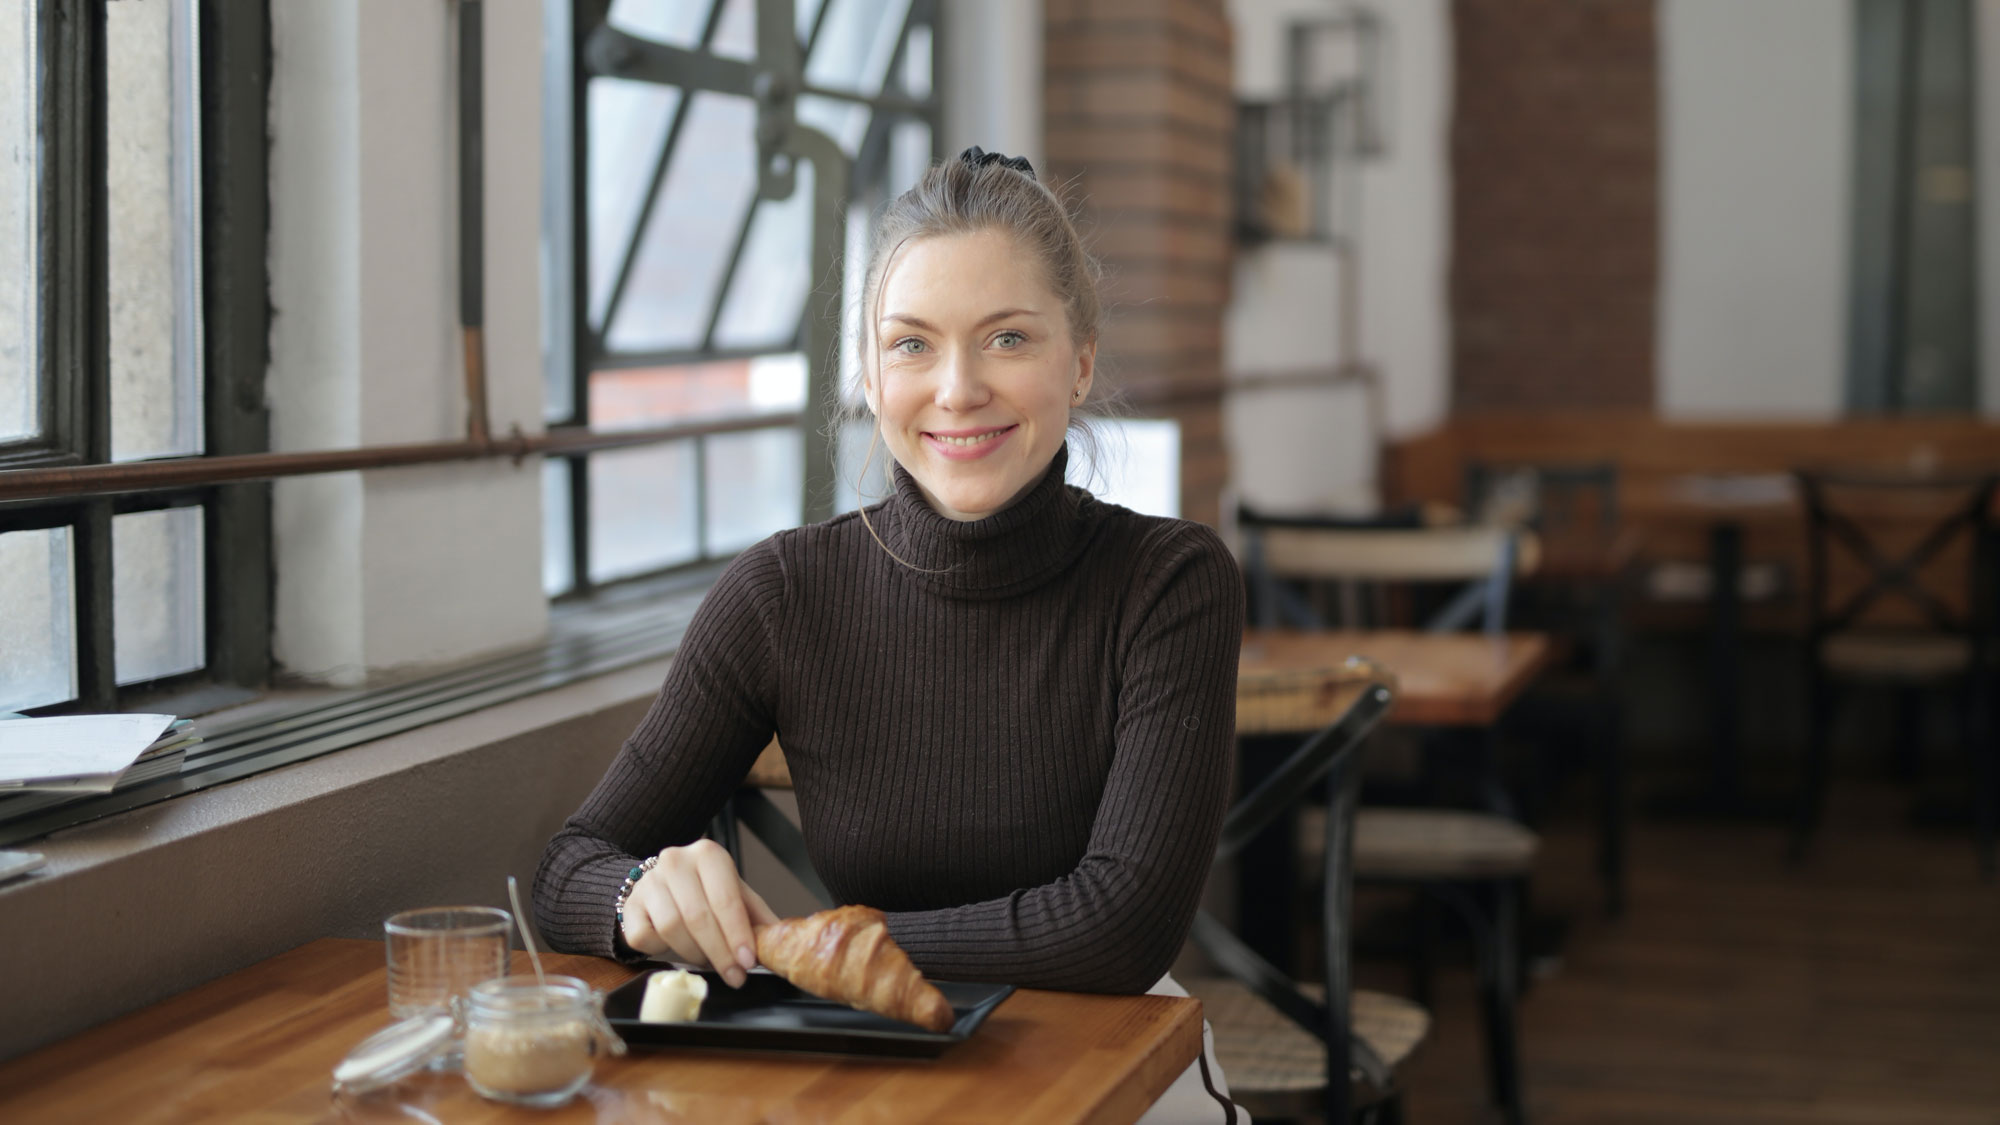 woman-in-black-turtleneck-sweater-holding-a-croissant-3906941